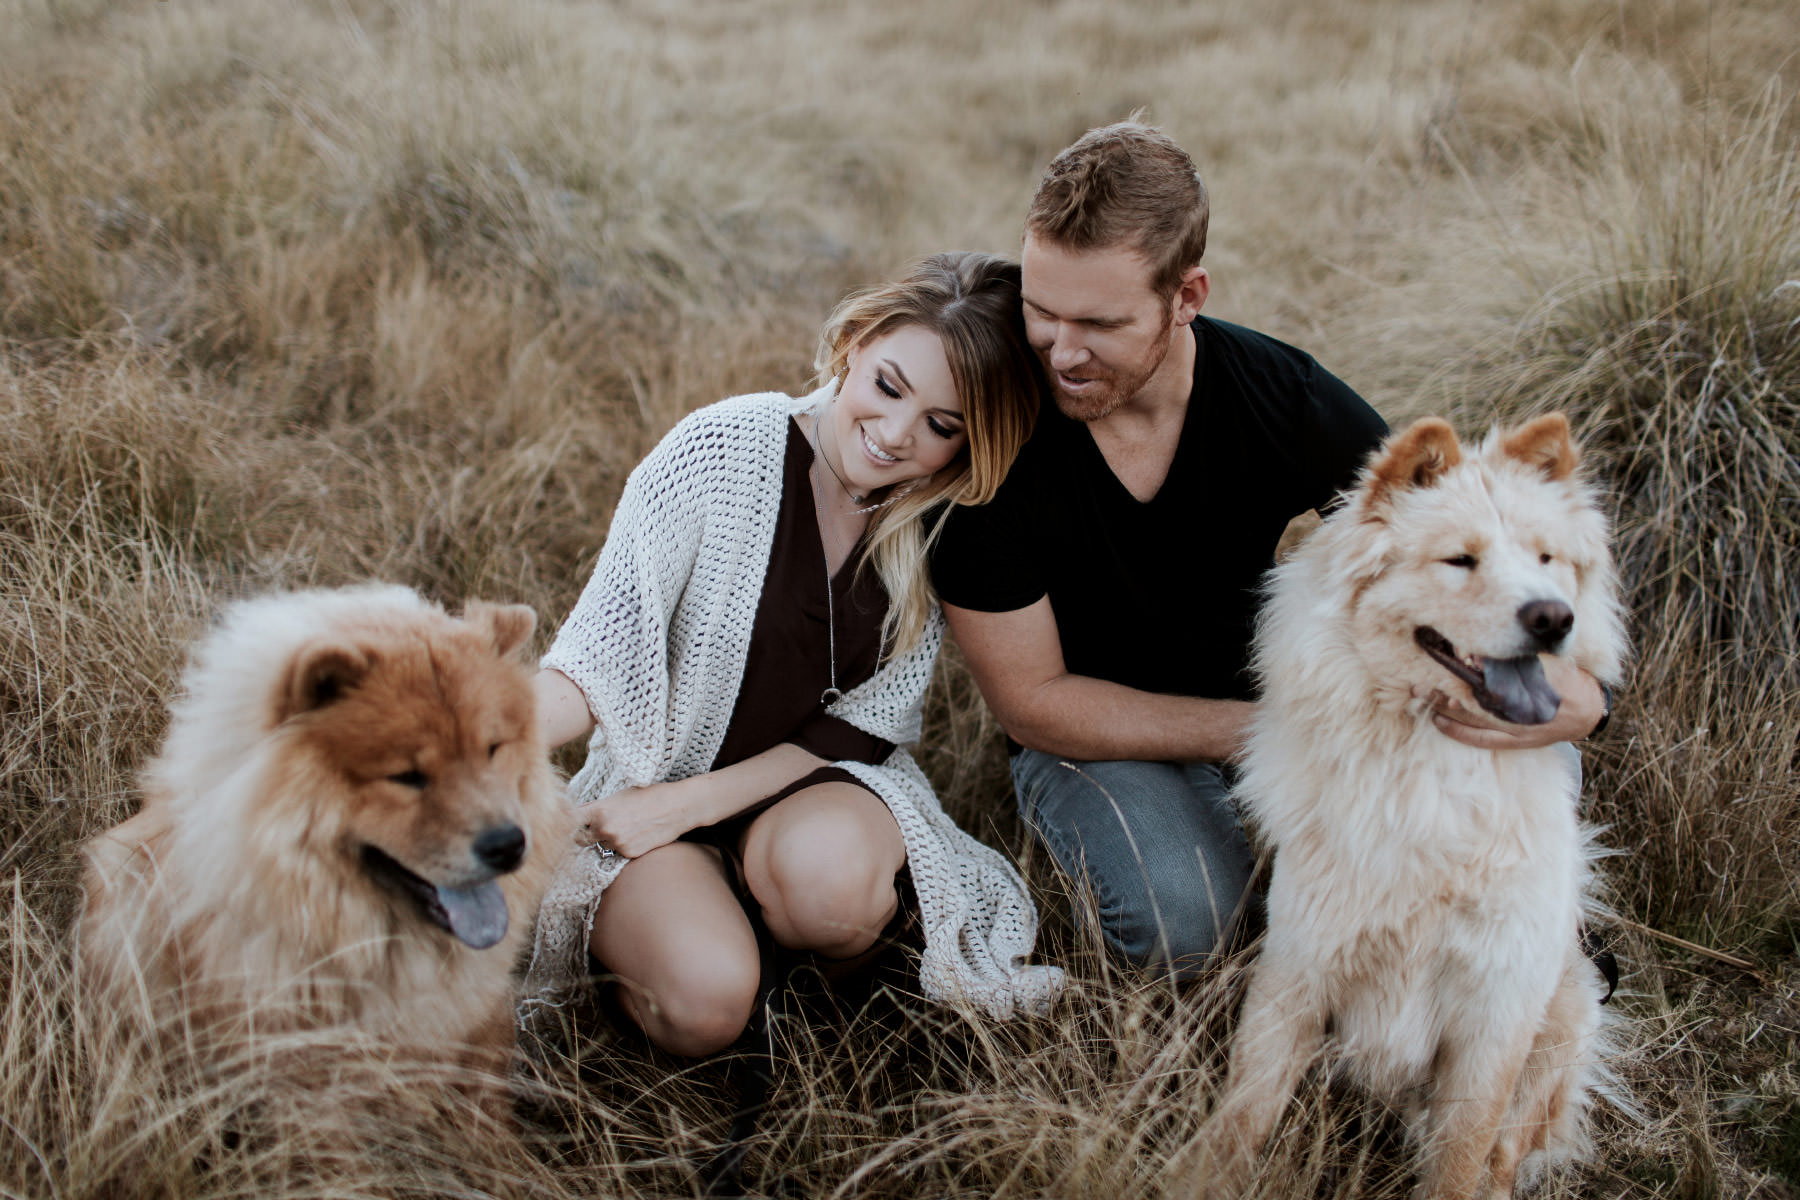 Engaged couple cuddling in a field at Palomar Mountain with two Chow Chow dogs